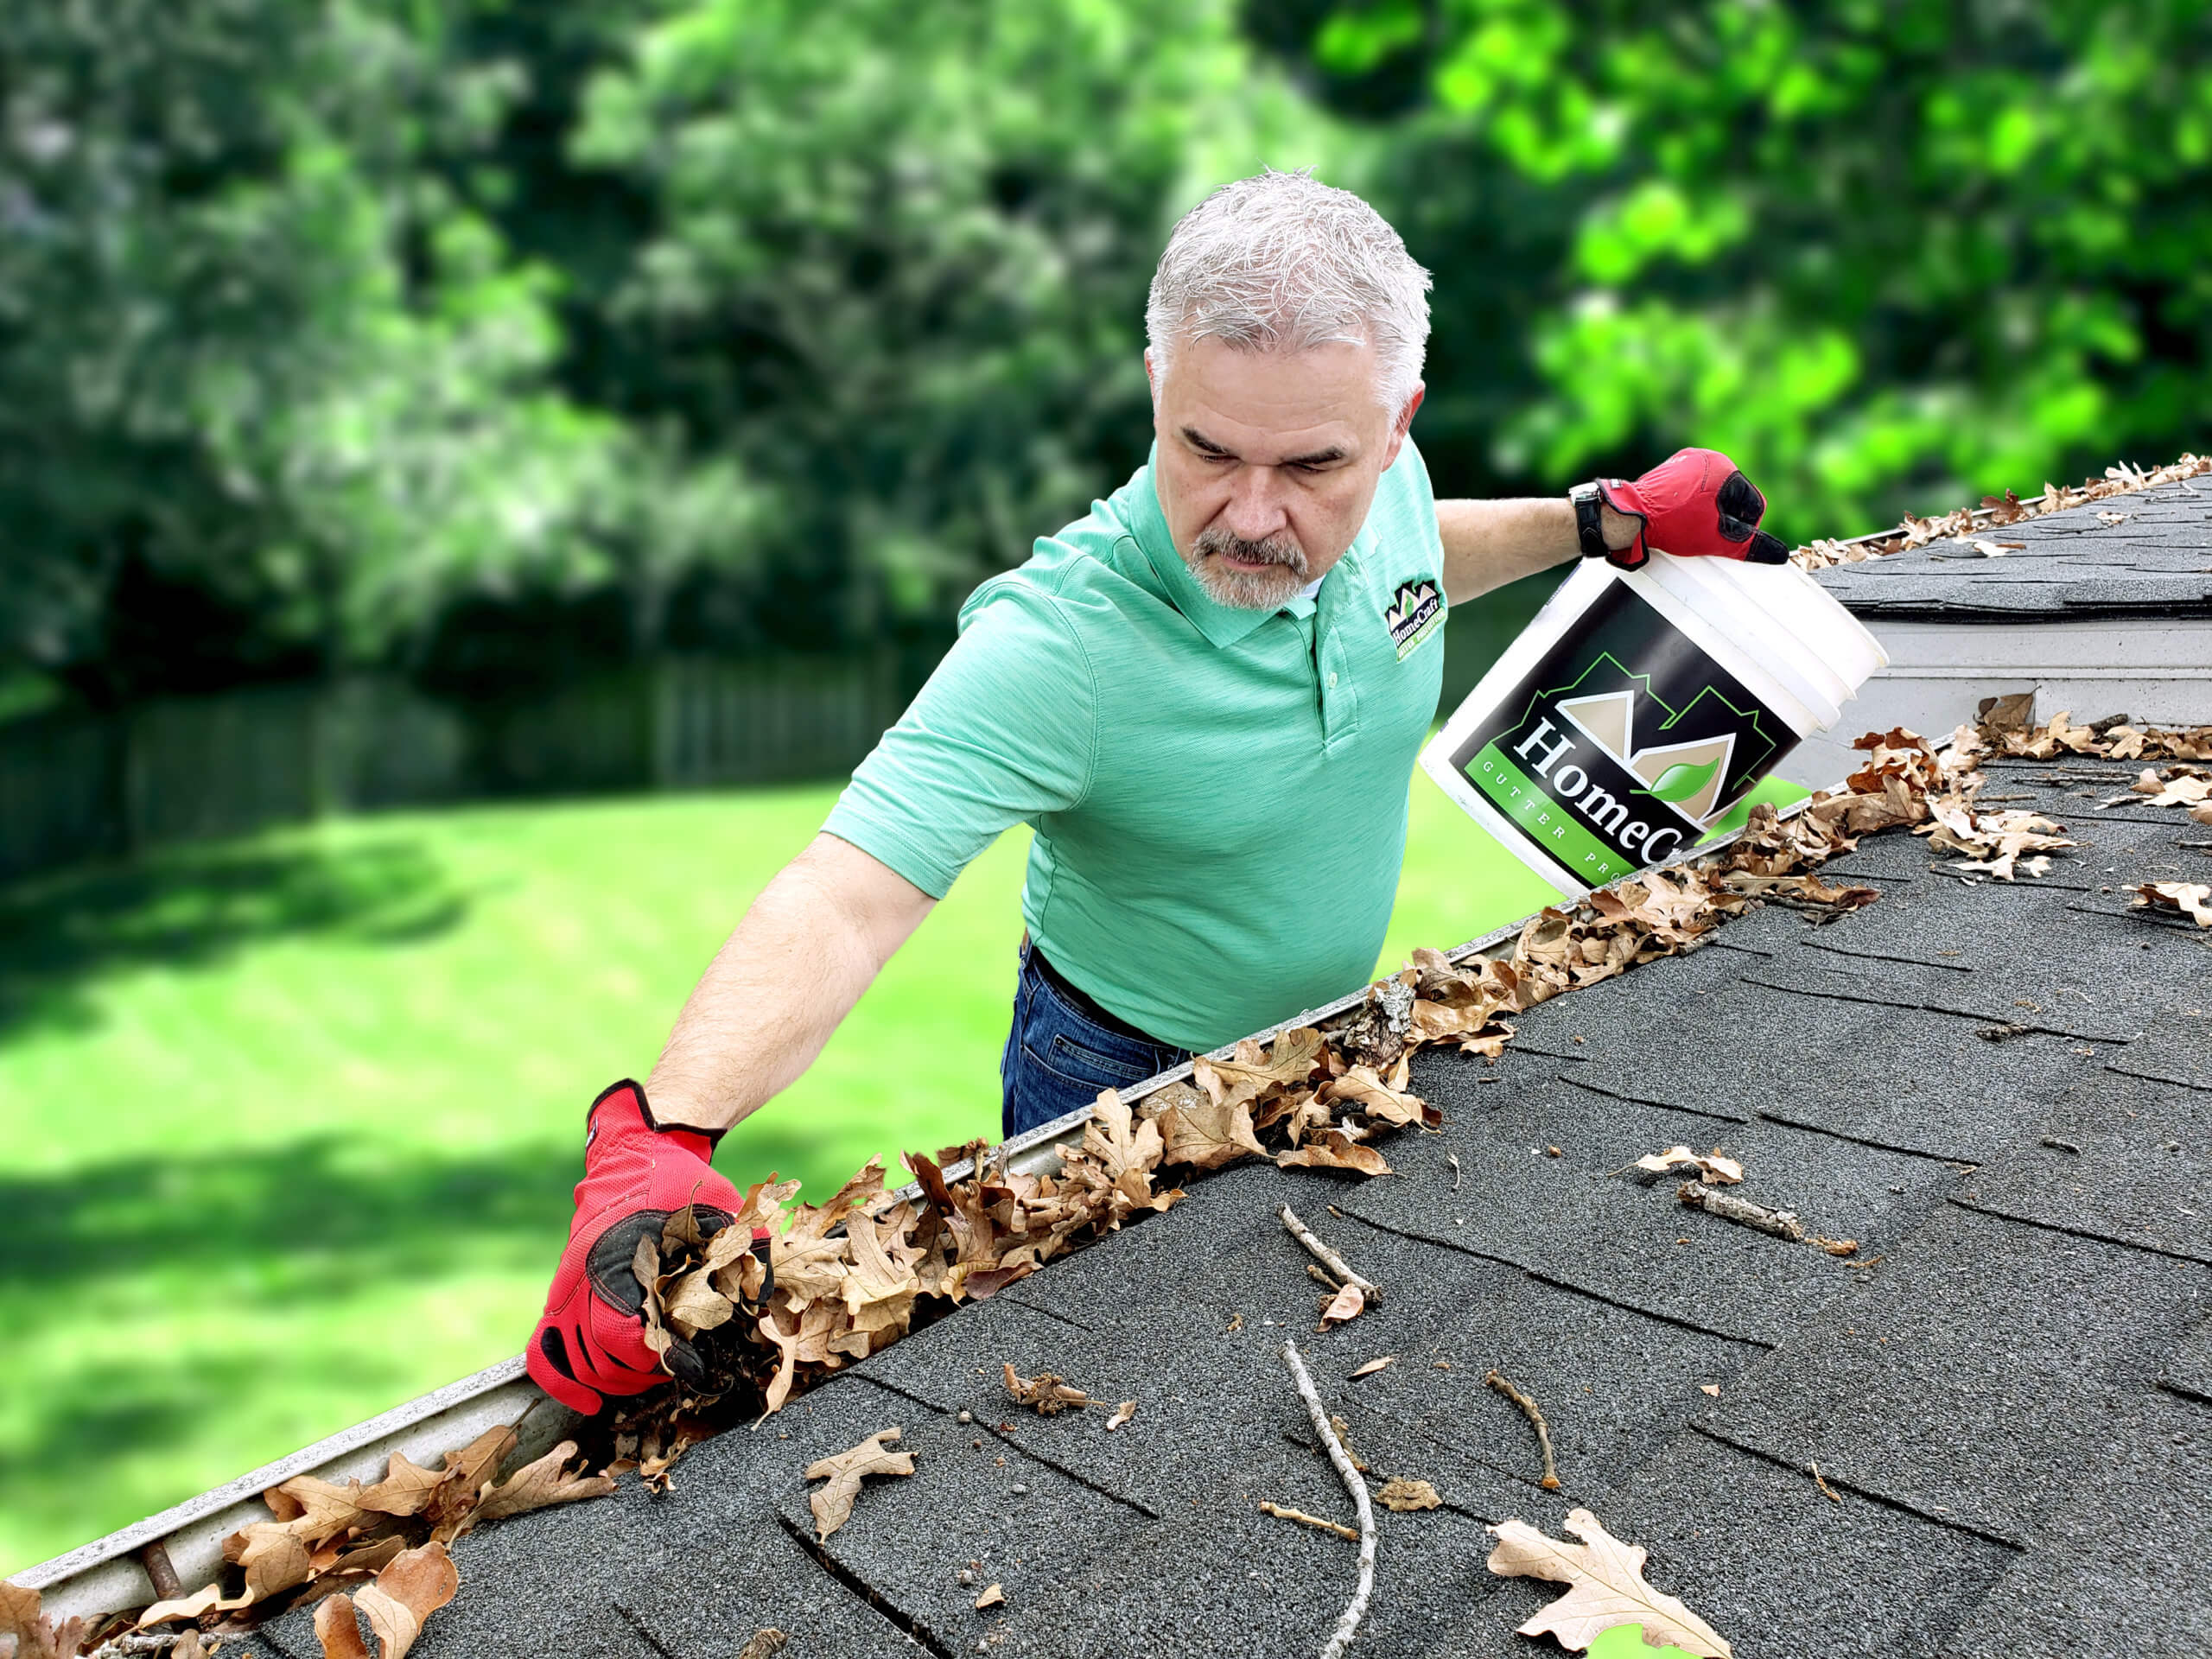 HomeCraft Gutter Protection Cleans Out Your Gutters Before Installing Our Gutter Guards